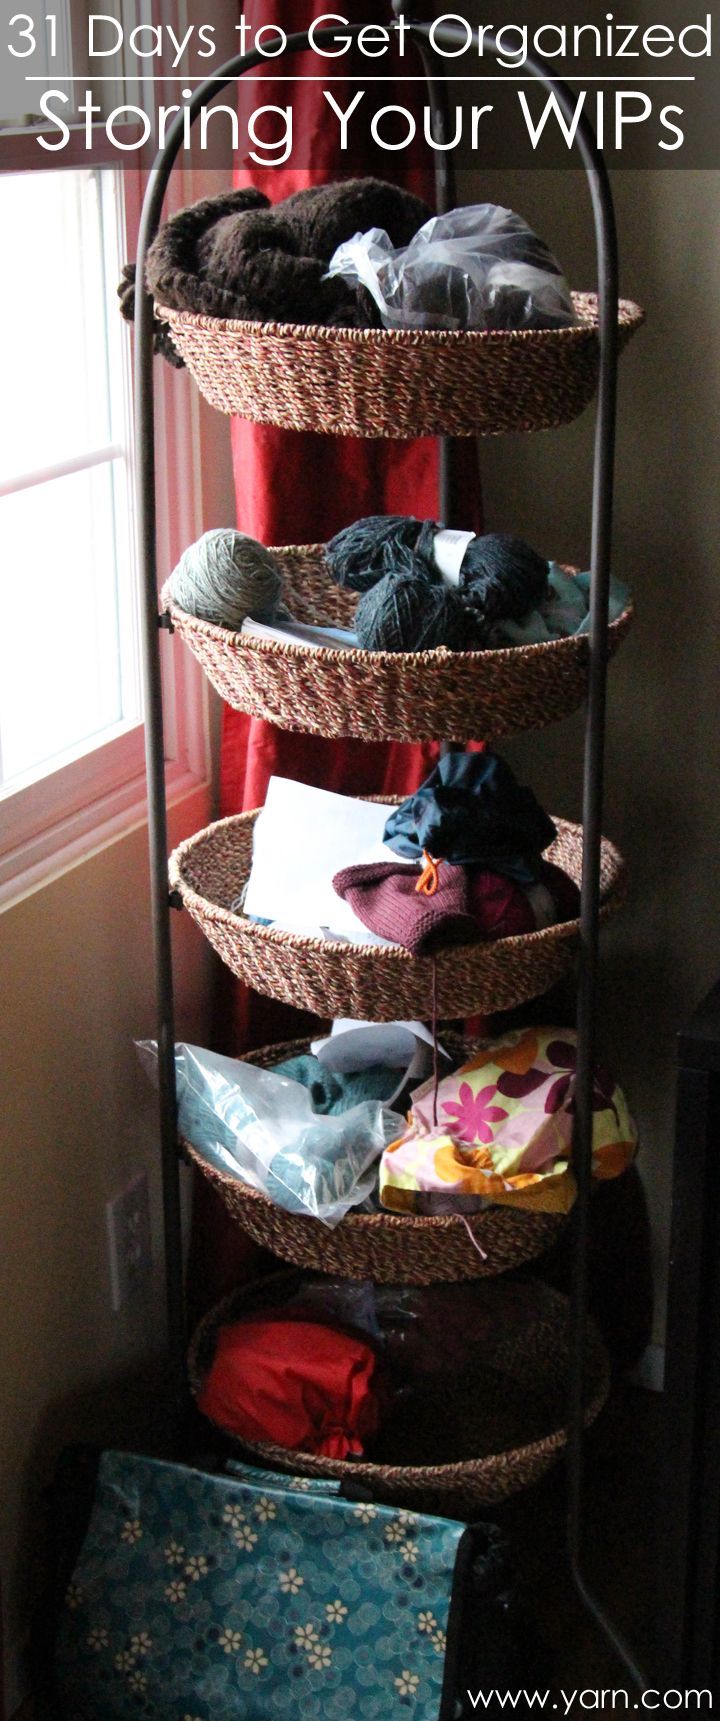 31 Days to Get Organized – Storage ideas for your knitting & crochet works in progress